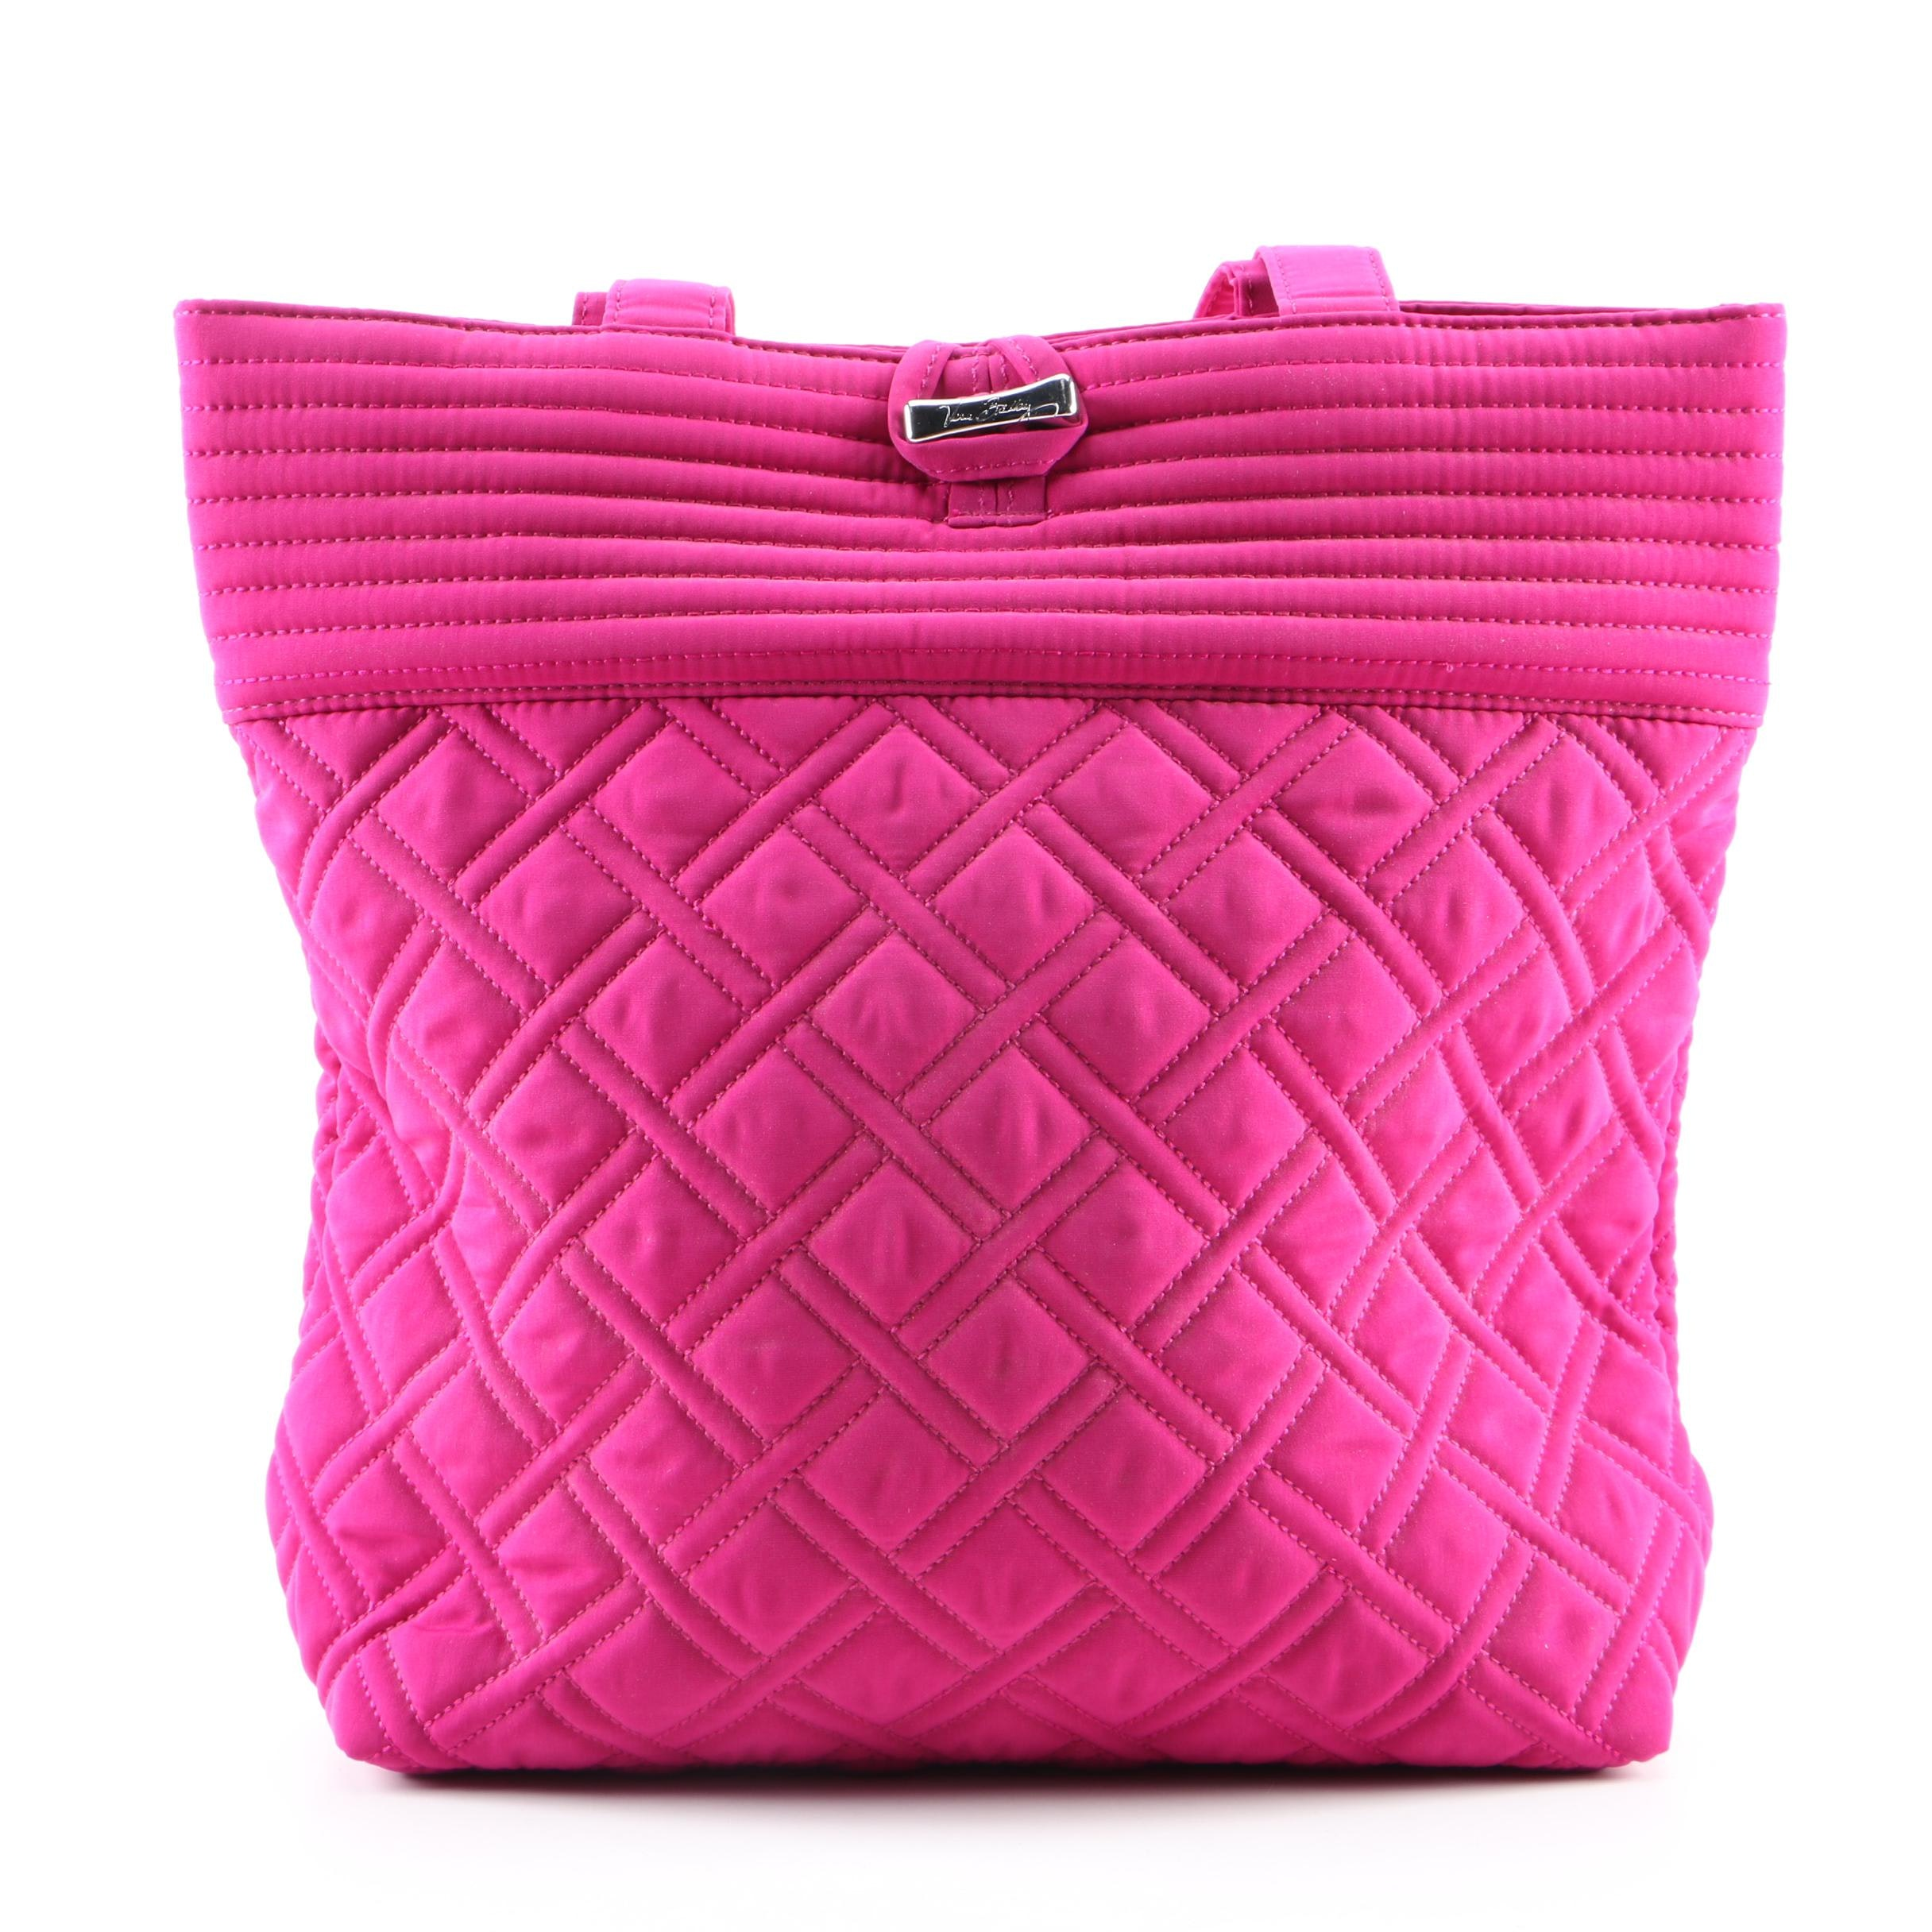 Vera Bradley Magenta Quilted Tote with Silver Tone Hardware and Pattern Lining